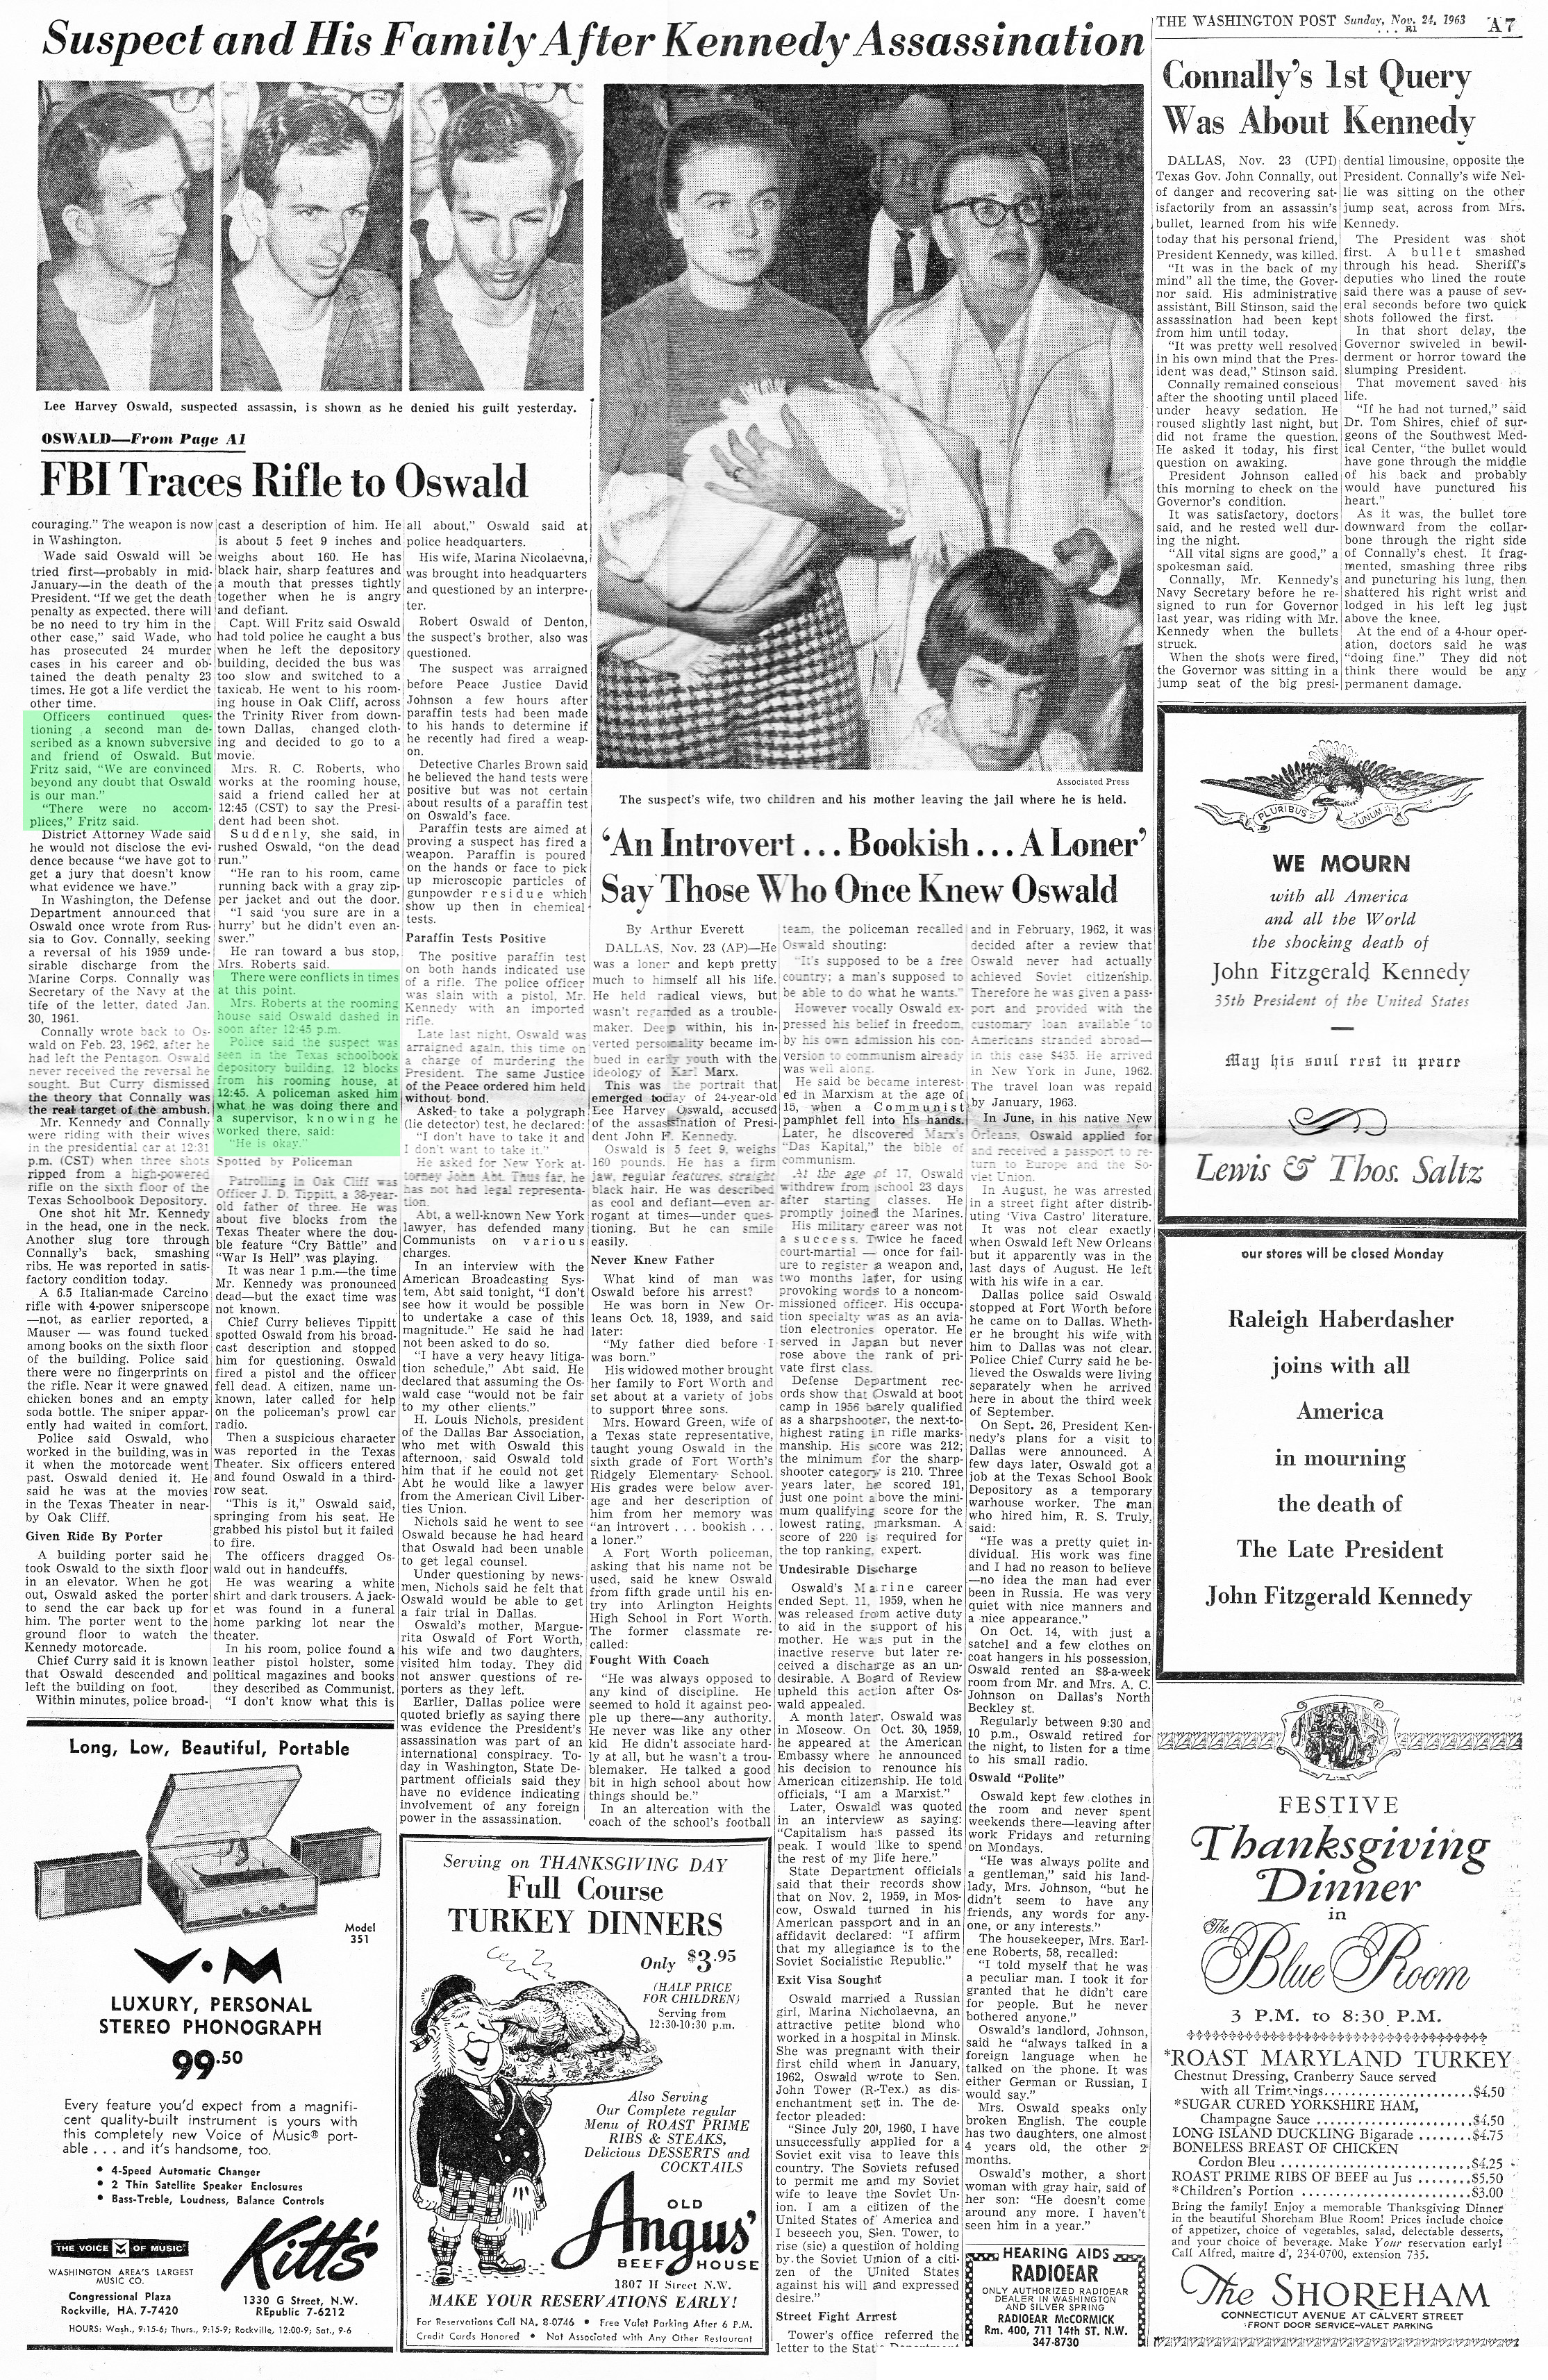 WAshington-Post-Nov-24-1963-page-7-ROKC-